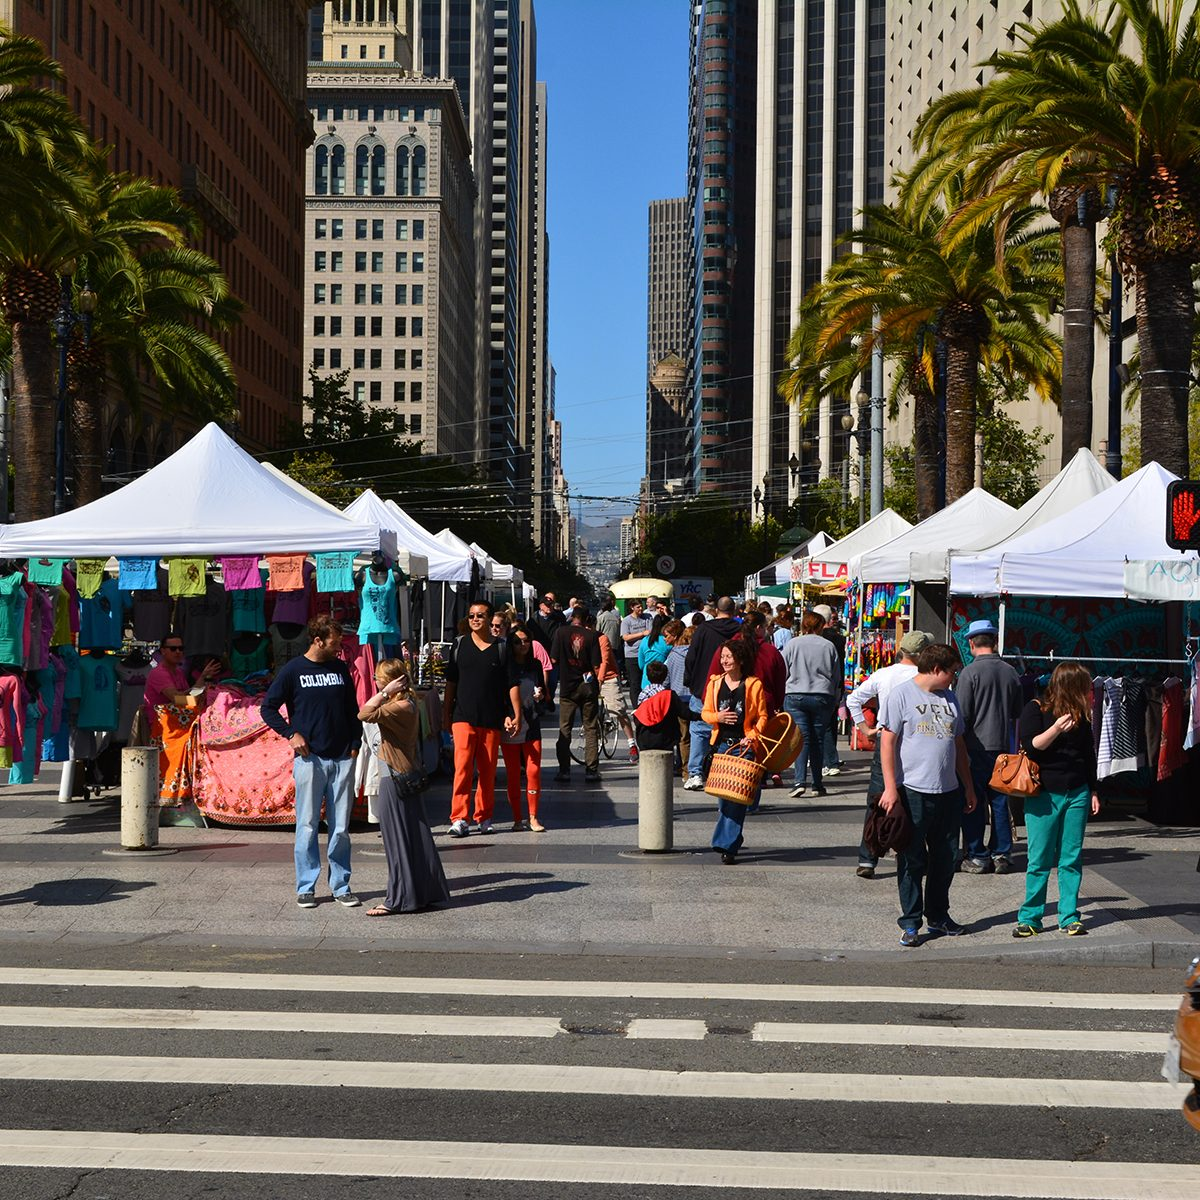 People shopping at the Ferry Plaza farmer's market in downtown San Francisco, California